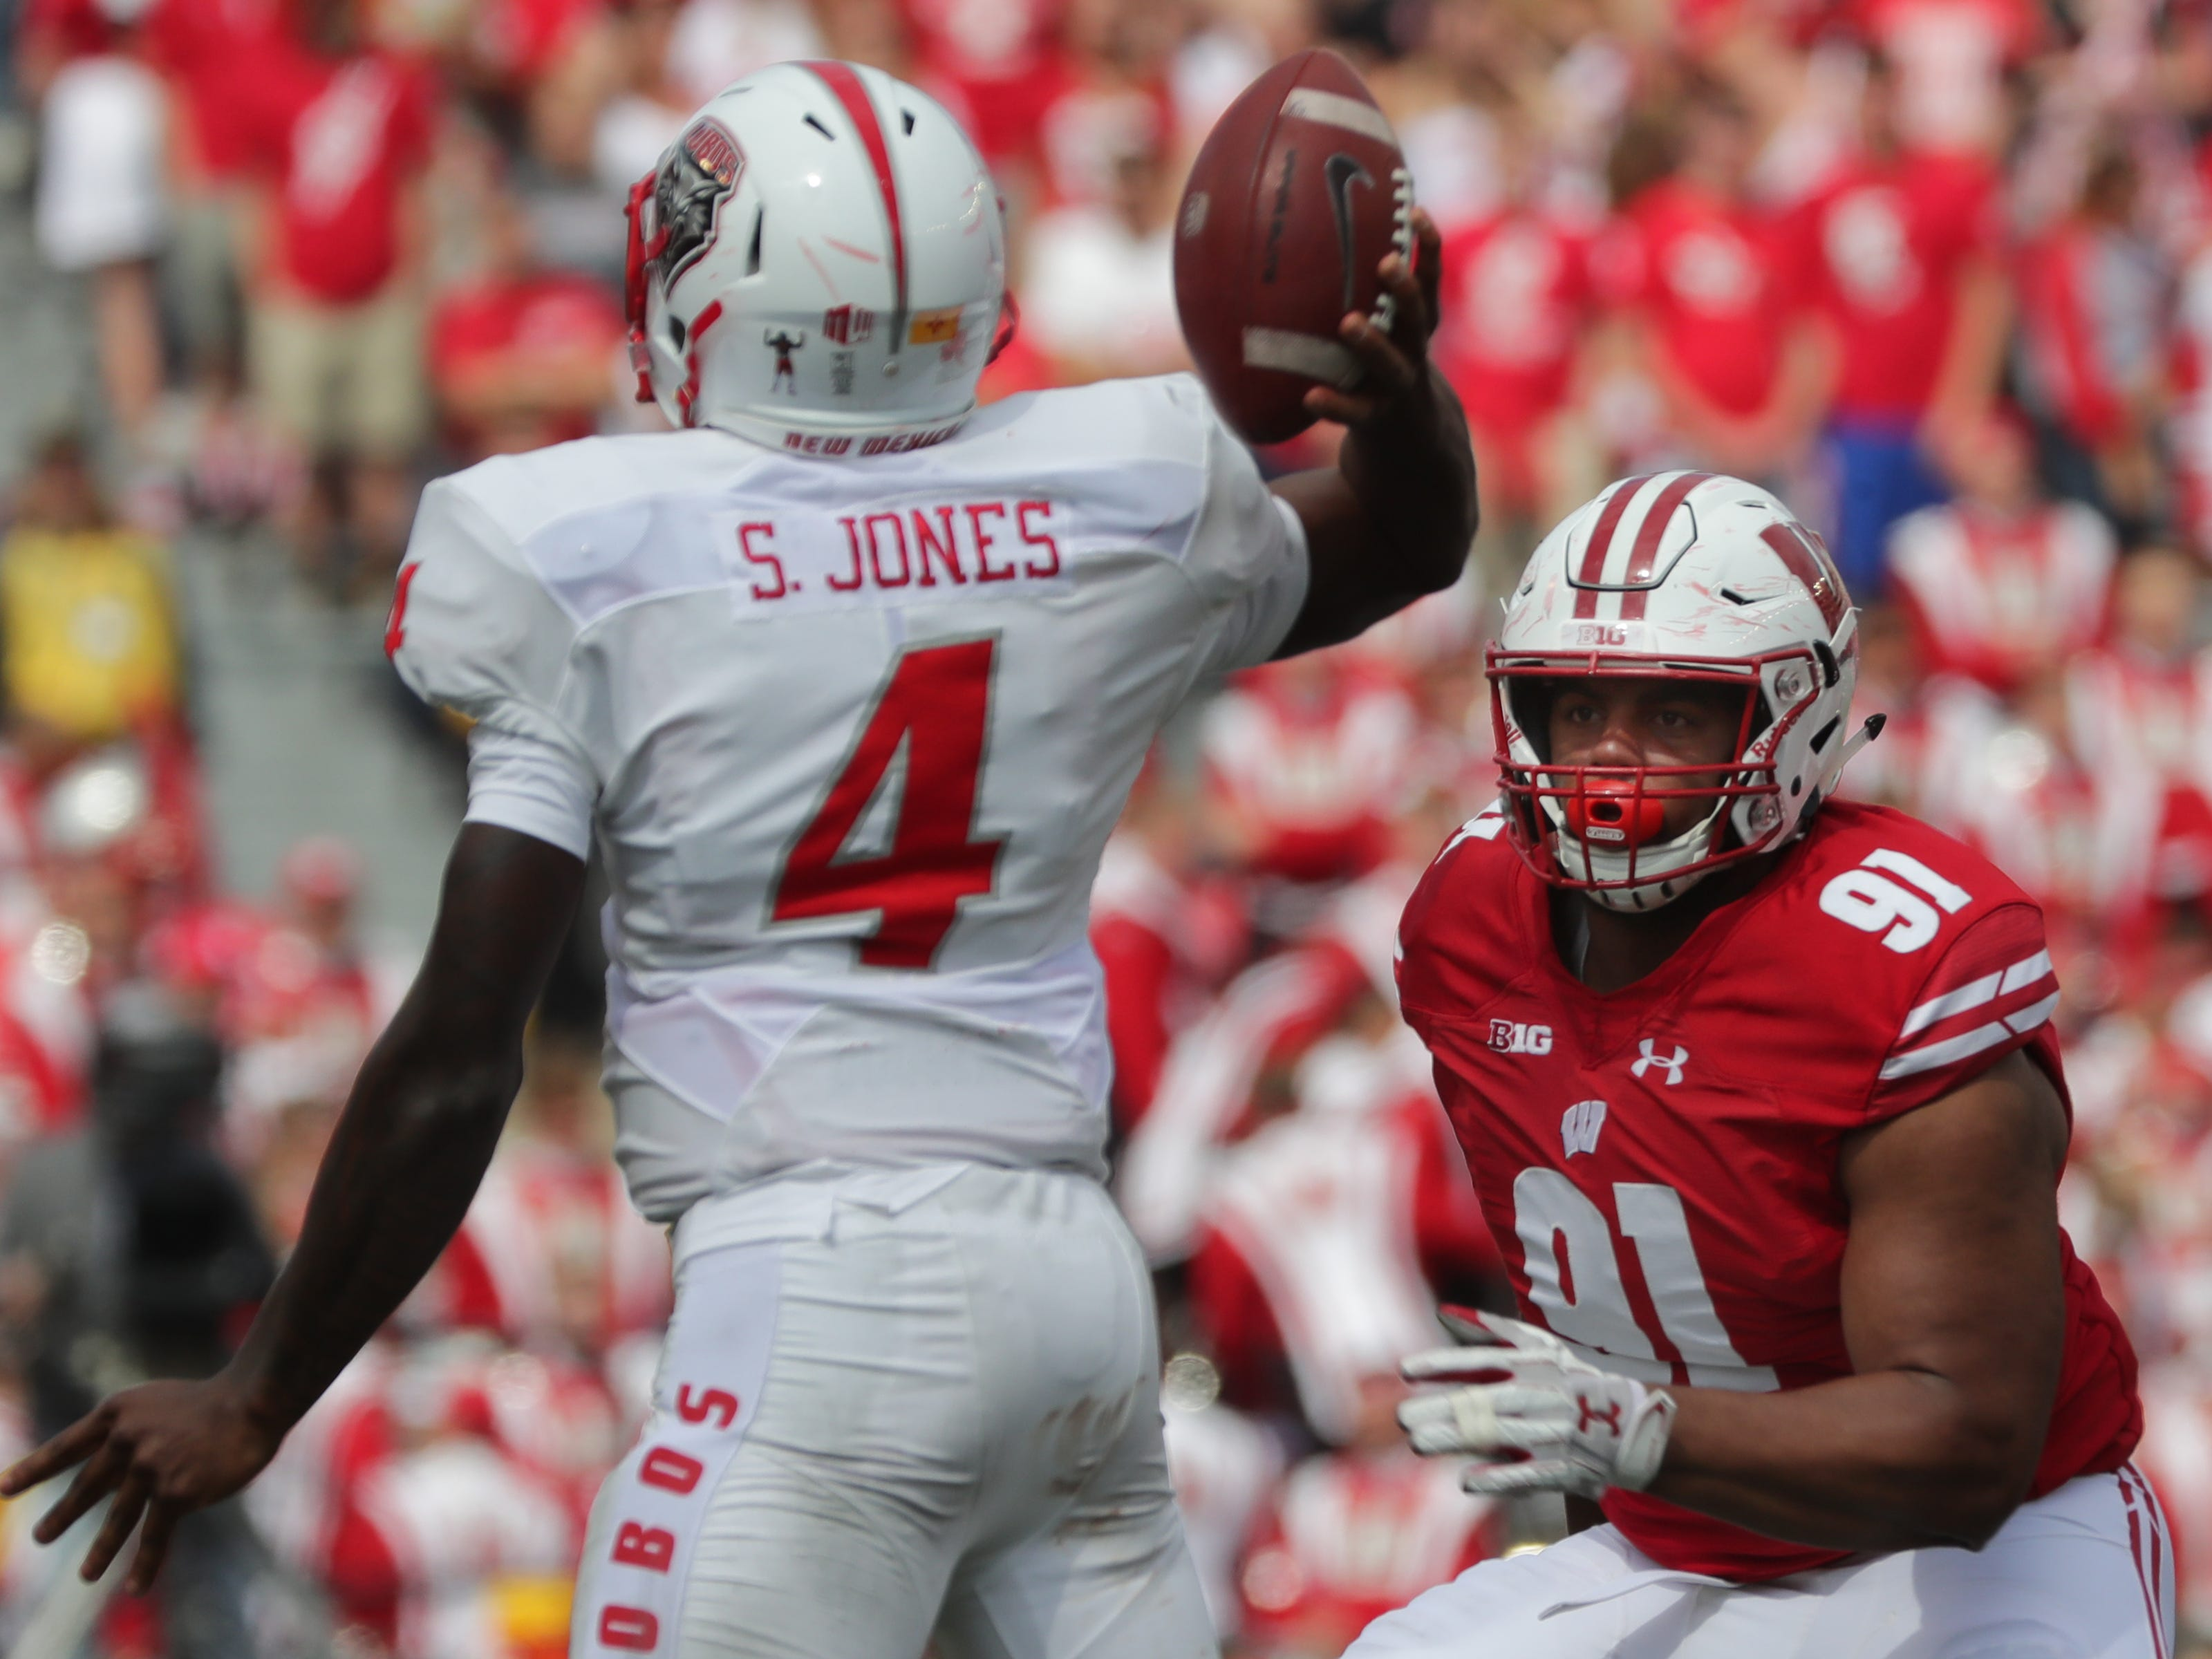 Wisconsin nose tackle Bryson Williams pressures New Mexico quarterback Sheriron Jones.